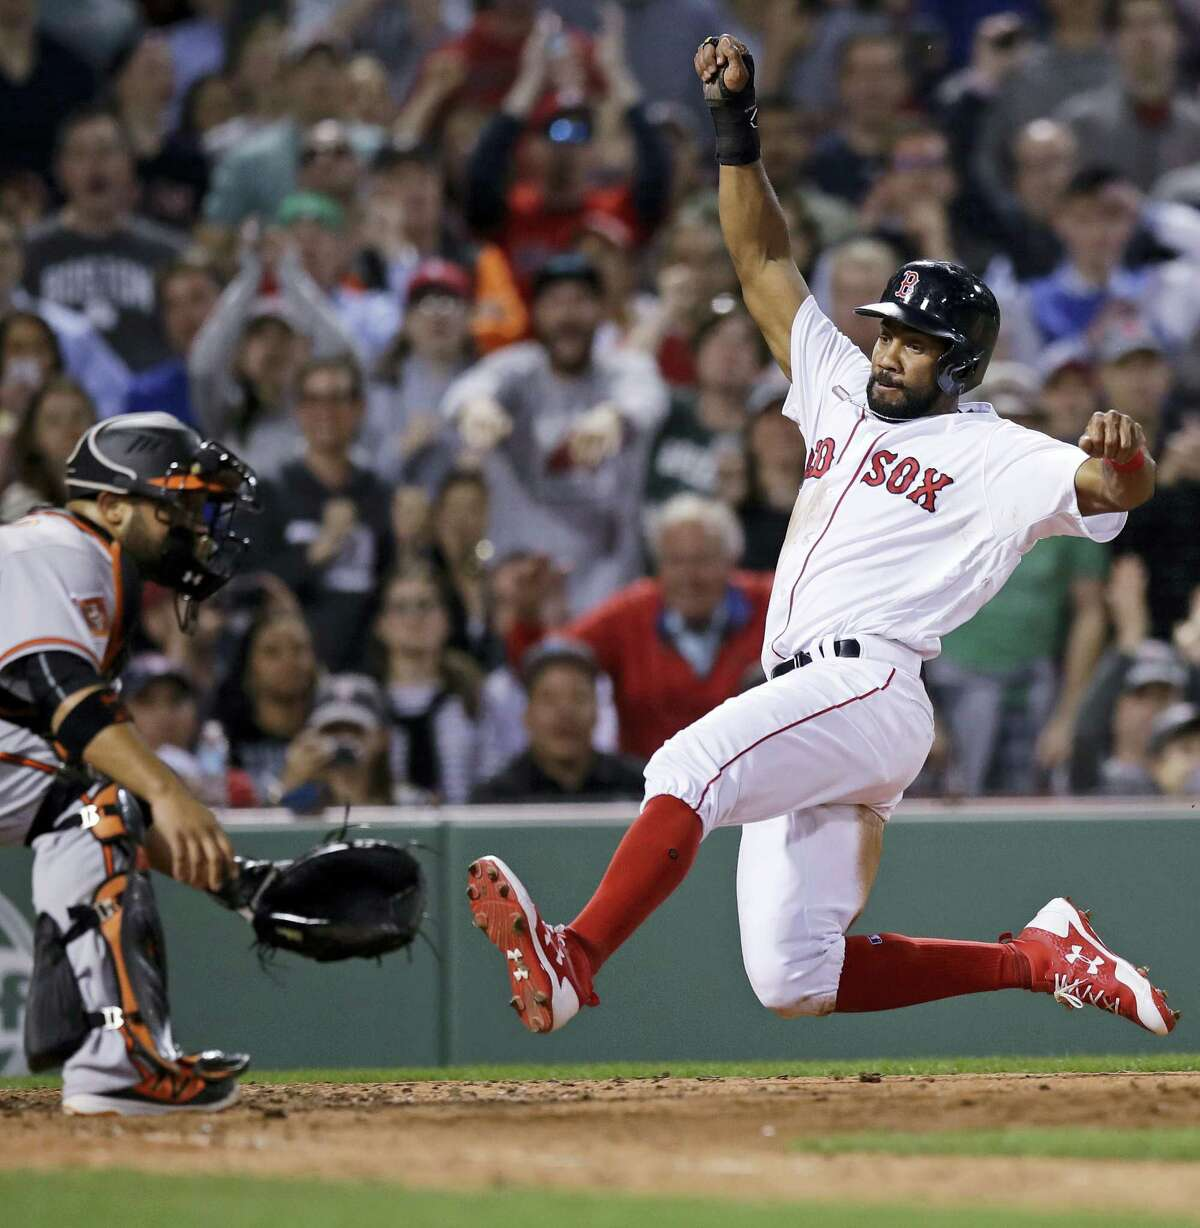 Boston's Chris Young, right, beats the throw home to Baltimore Orioles catcher Welington Castillo, left, while scoring on a single by Dustin Pedroia during the seventh inning at Fenway Park in Boston.